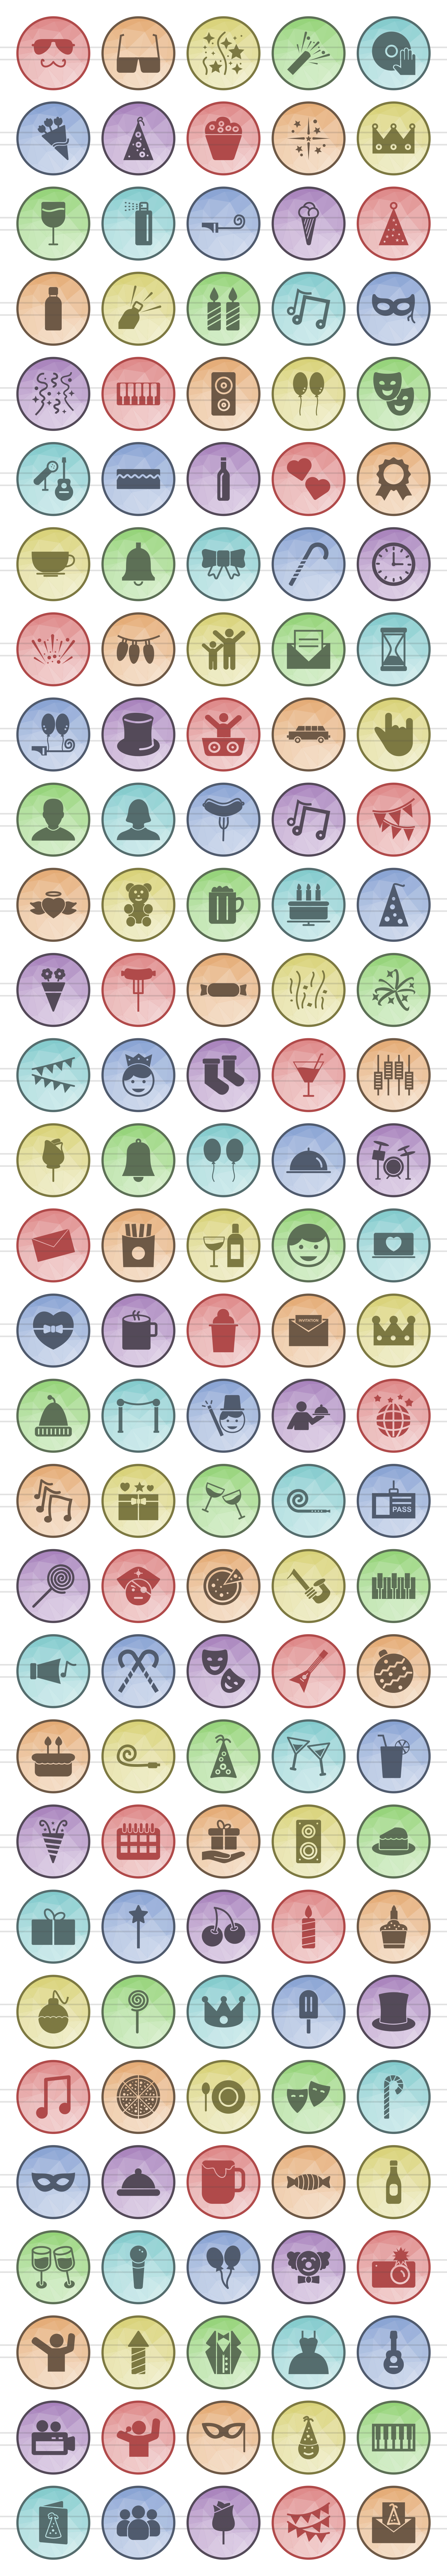 150 Birthday Filled Filled Low Poly Icons example image 2